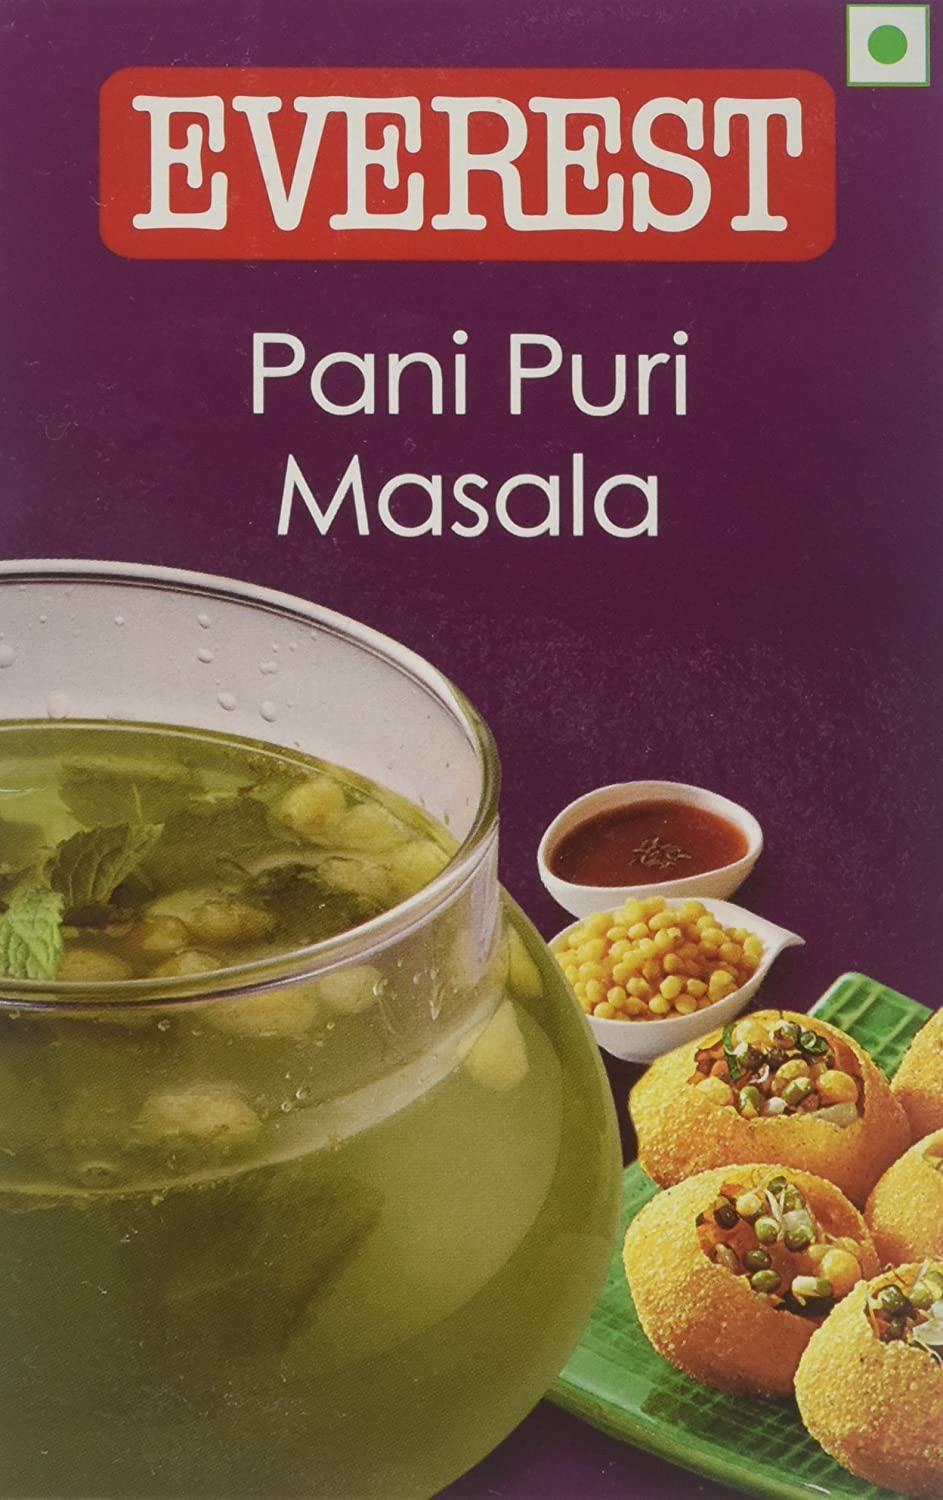 Everest 2021 new Pani Puri Masala Popular shop is the lowest price challenge Grams 100 gm